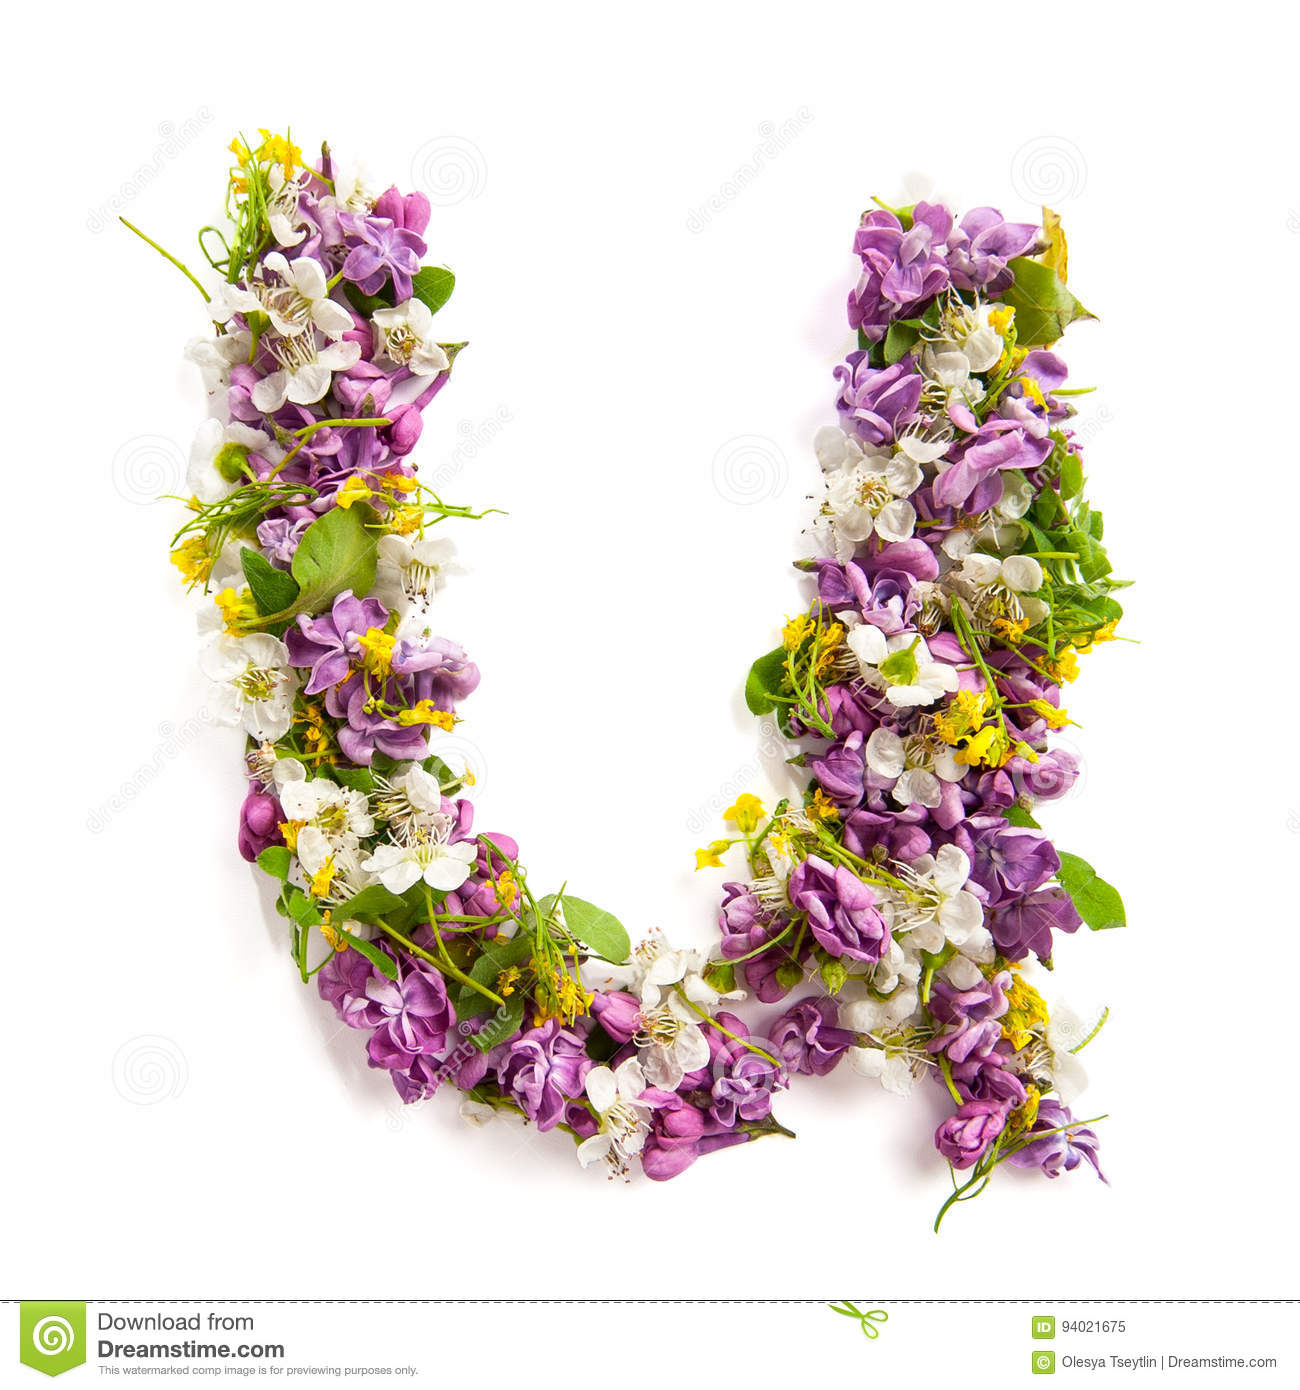 The letter «U» made of various natural small flowers.